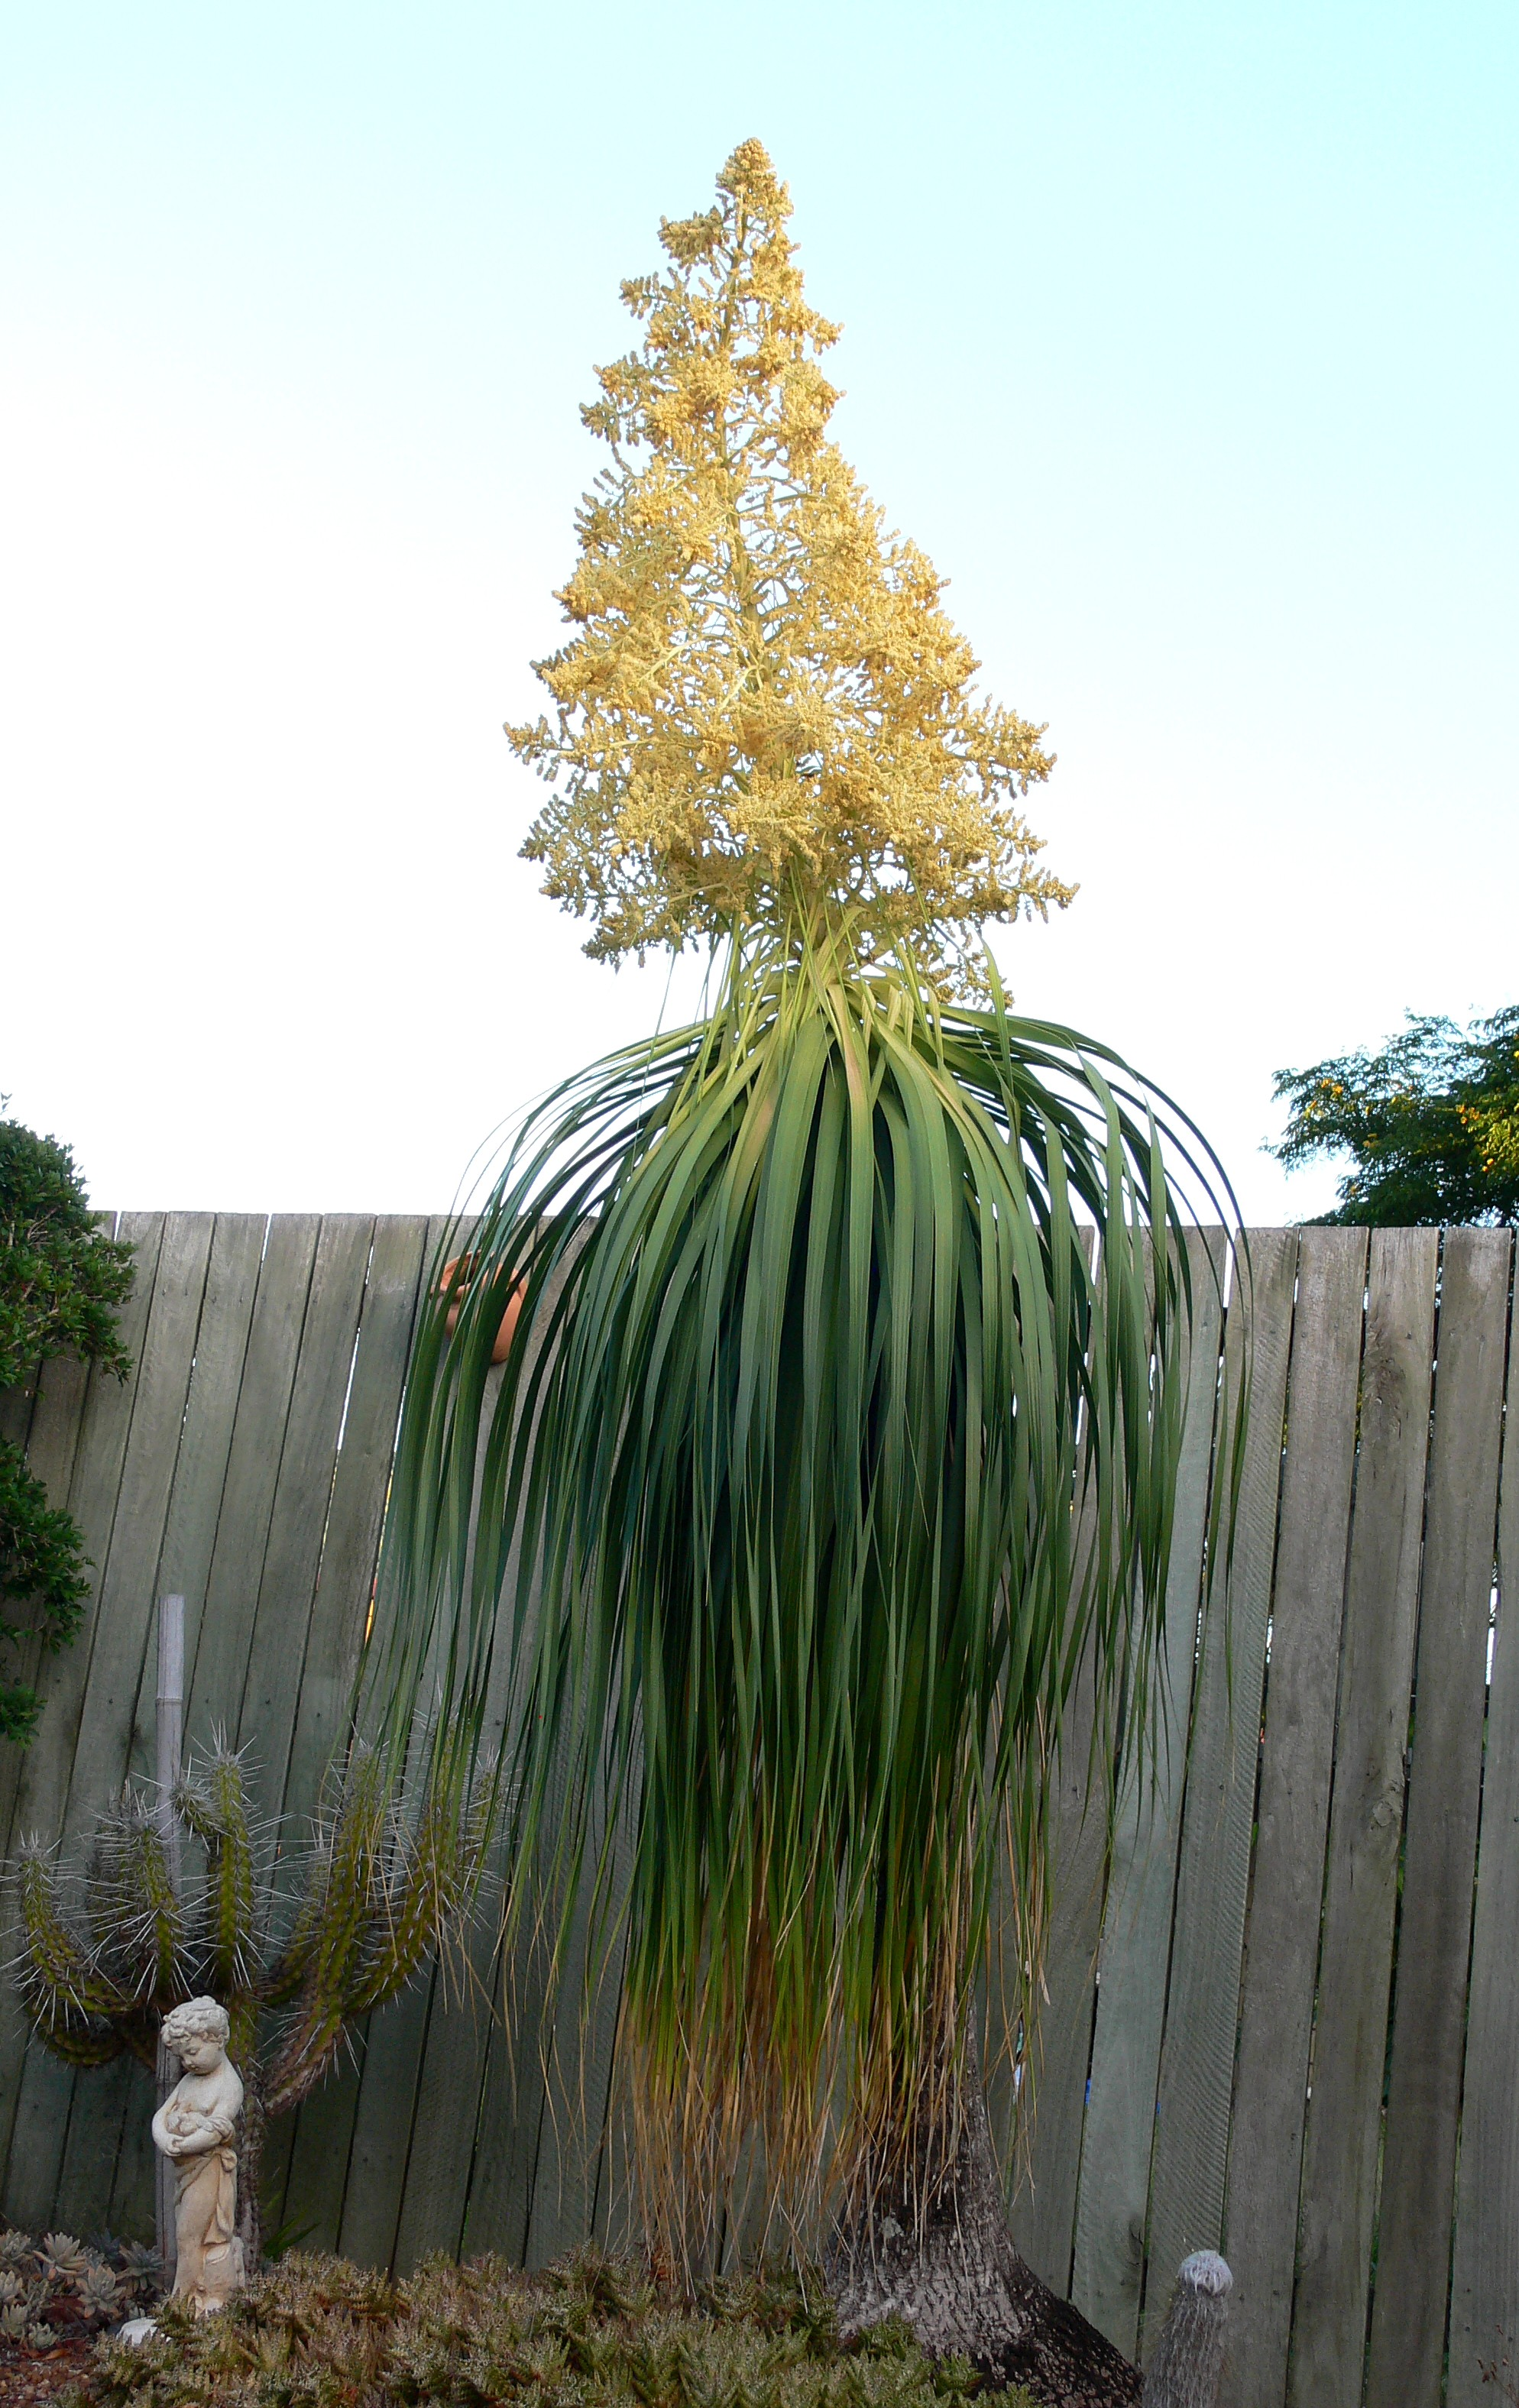 Ponytail Palm Ten Random Facts